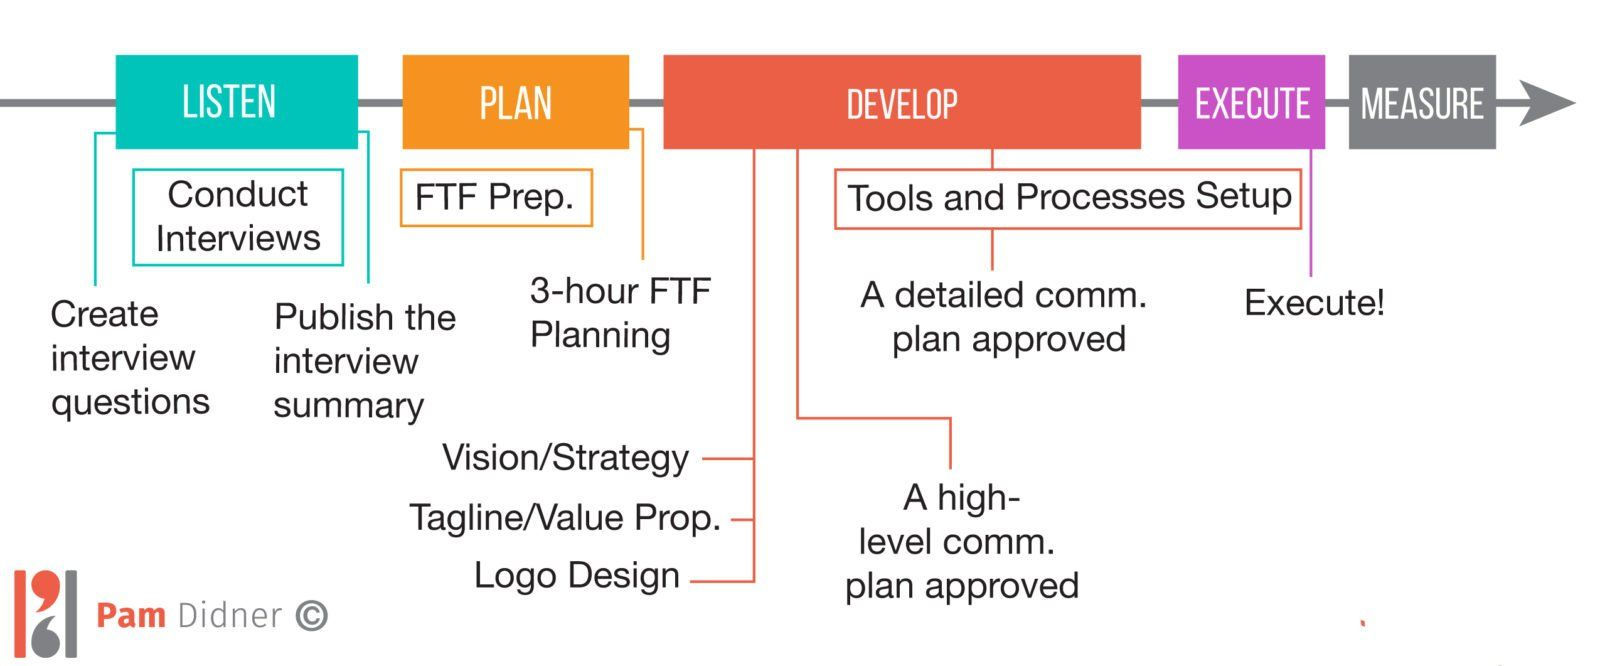 Internal Communications Plan Stages